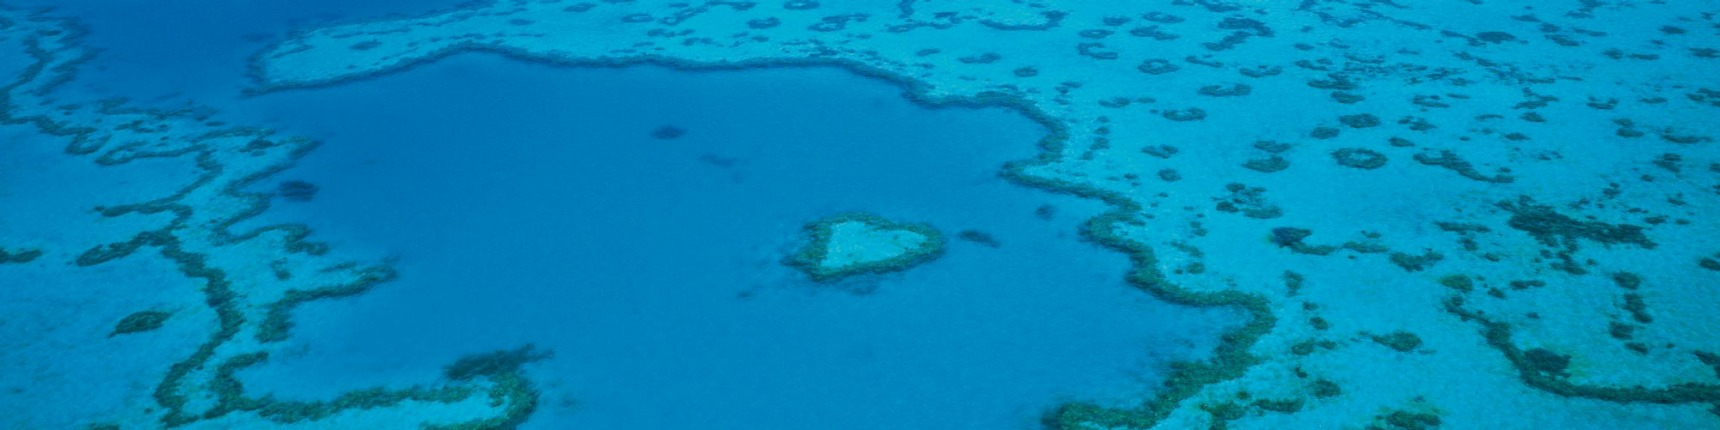 Whitsundays reef australia